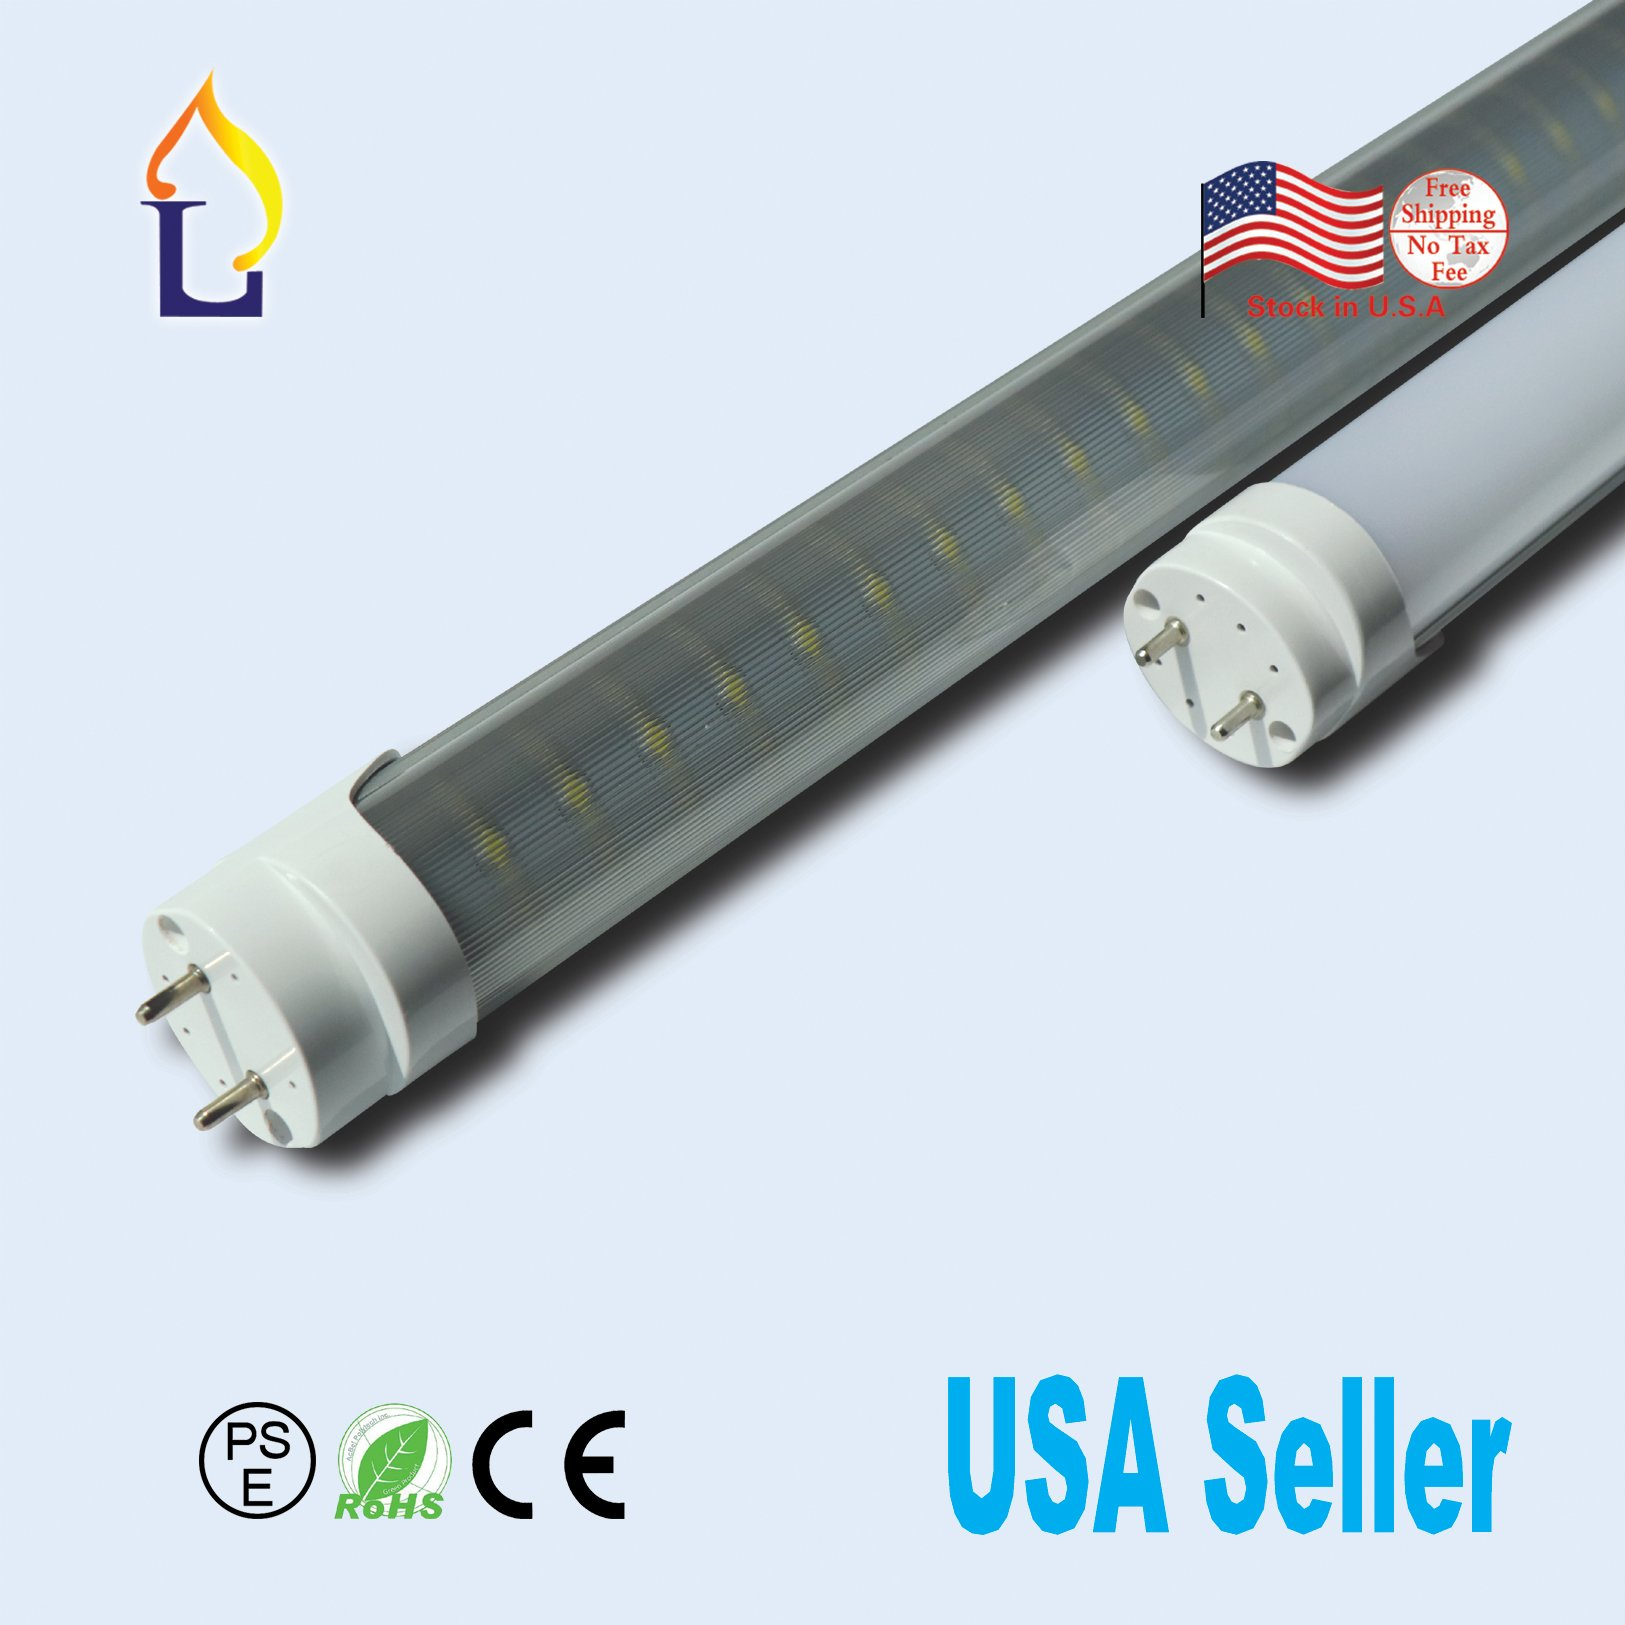 10Pack G13 18W 4FT LED T8 Light Tube Fluorescent Replacement Lamp Milky Cover